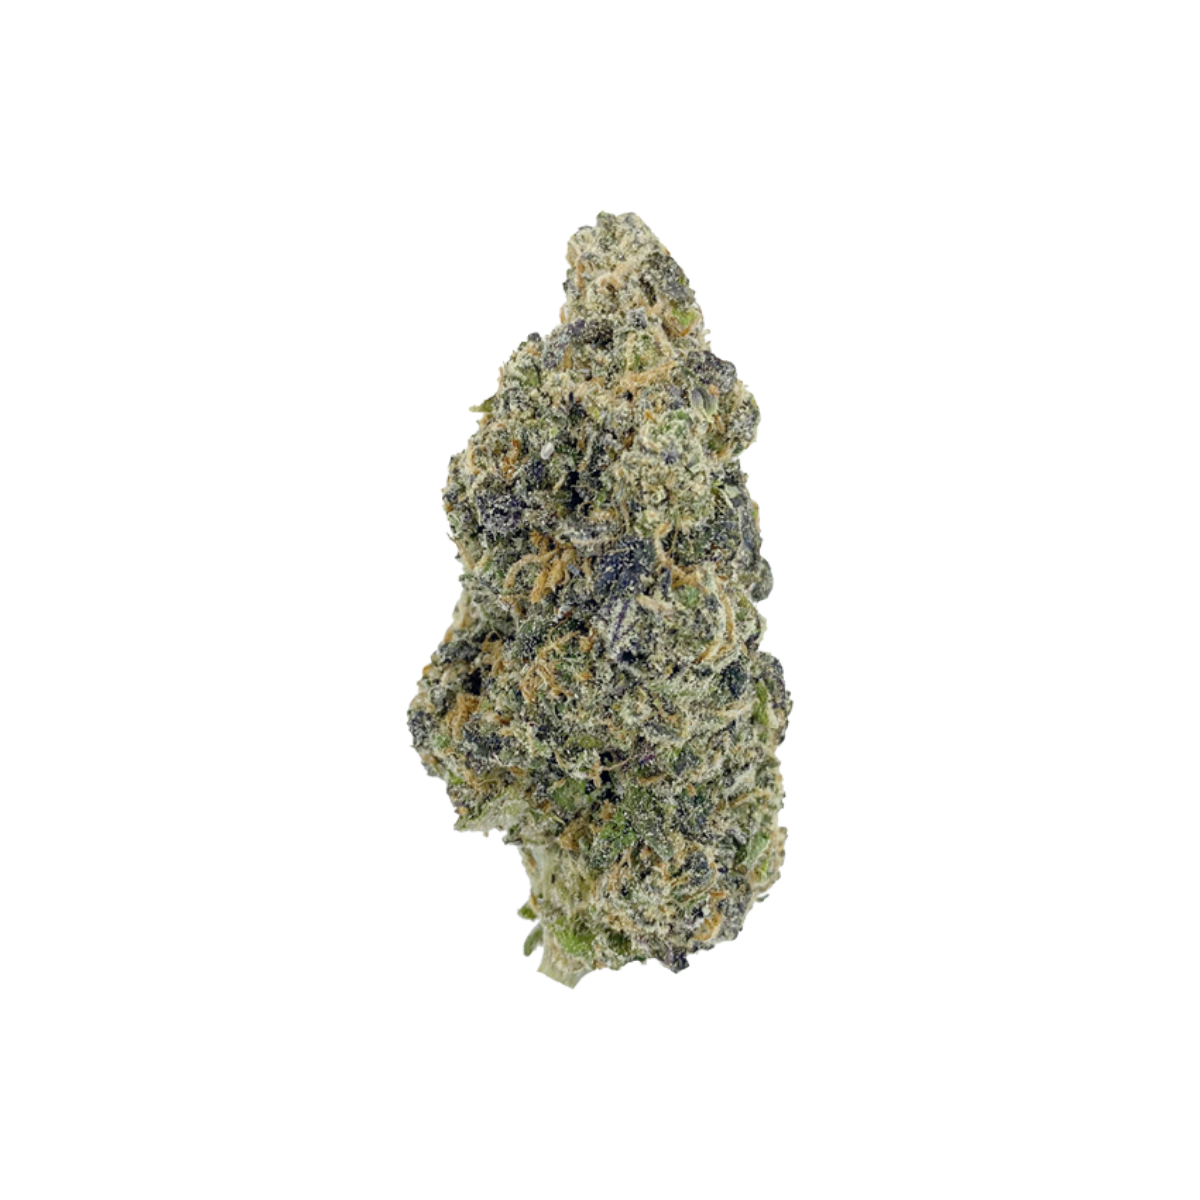 Tenzo Dosi Pie Nug - colourful green and purple with visible trichomes on a white background.